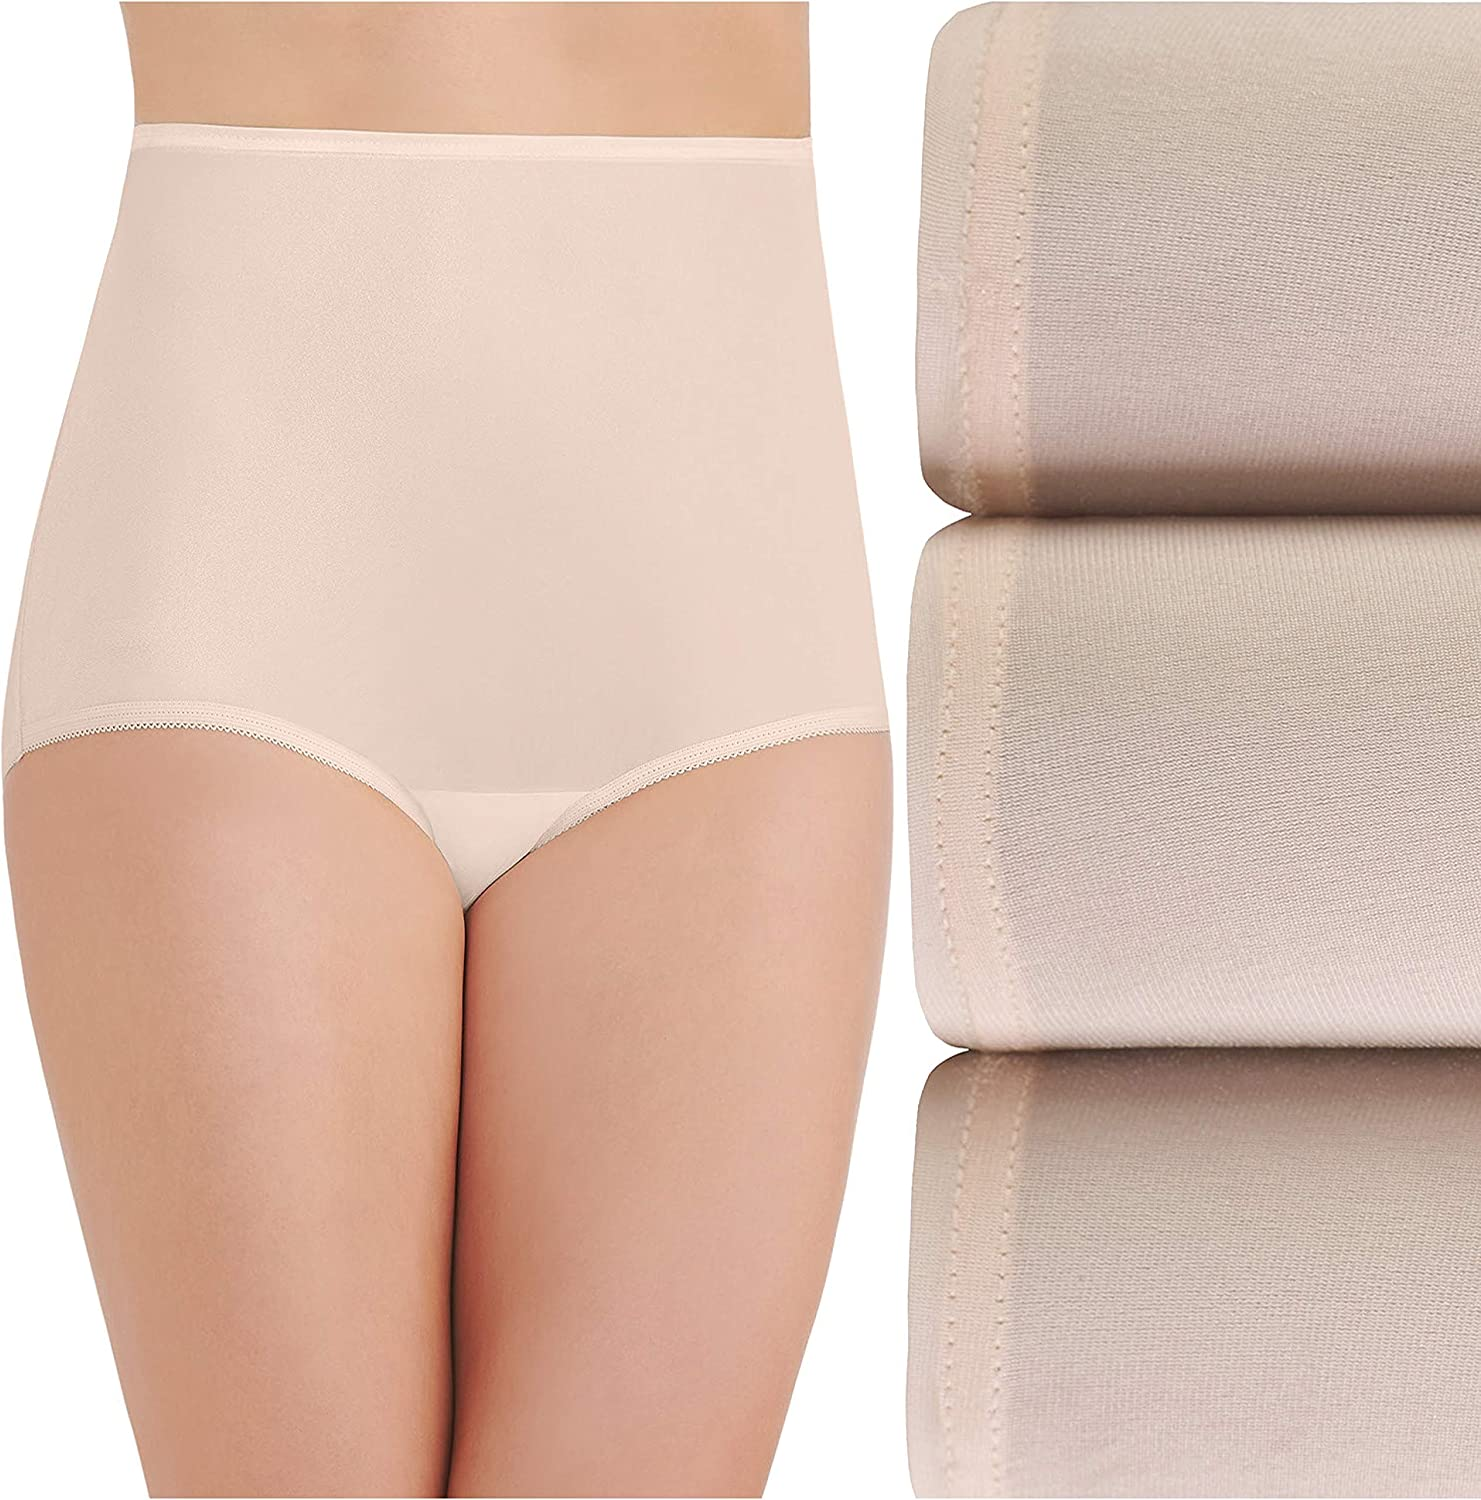 Vanity Fair Women S Perfectly Yours Traditional Nylon Brief Panties At Amazon Women S Clothing Store